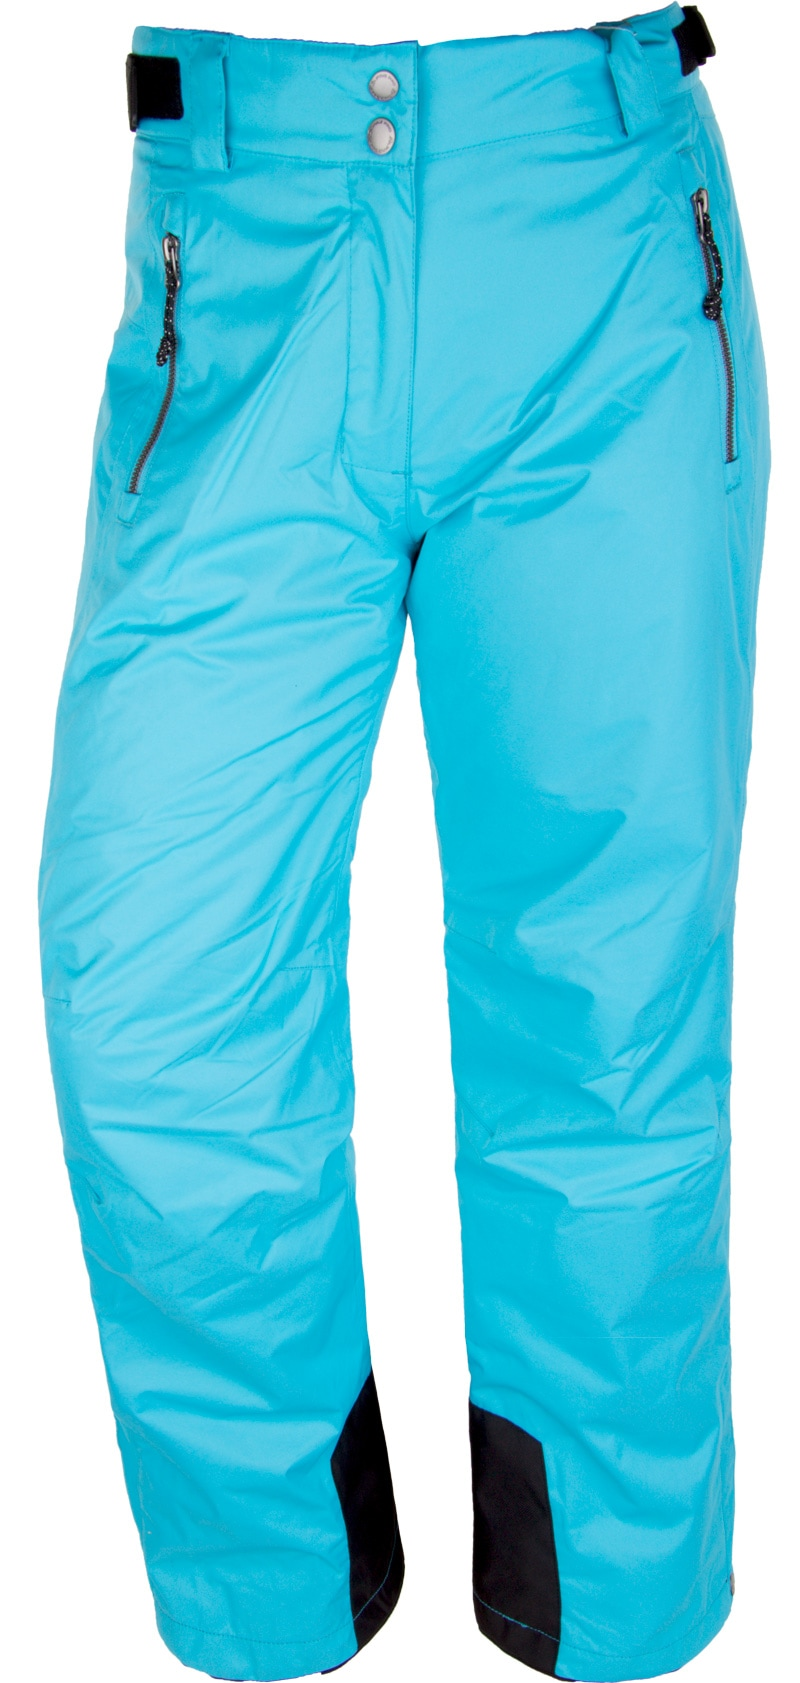 Winter pants ALPINE PRO FLEMERA